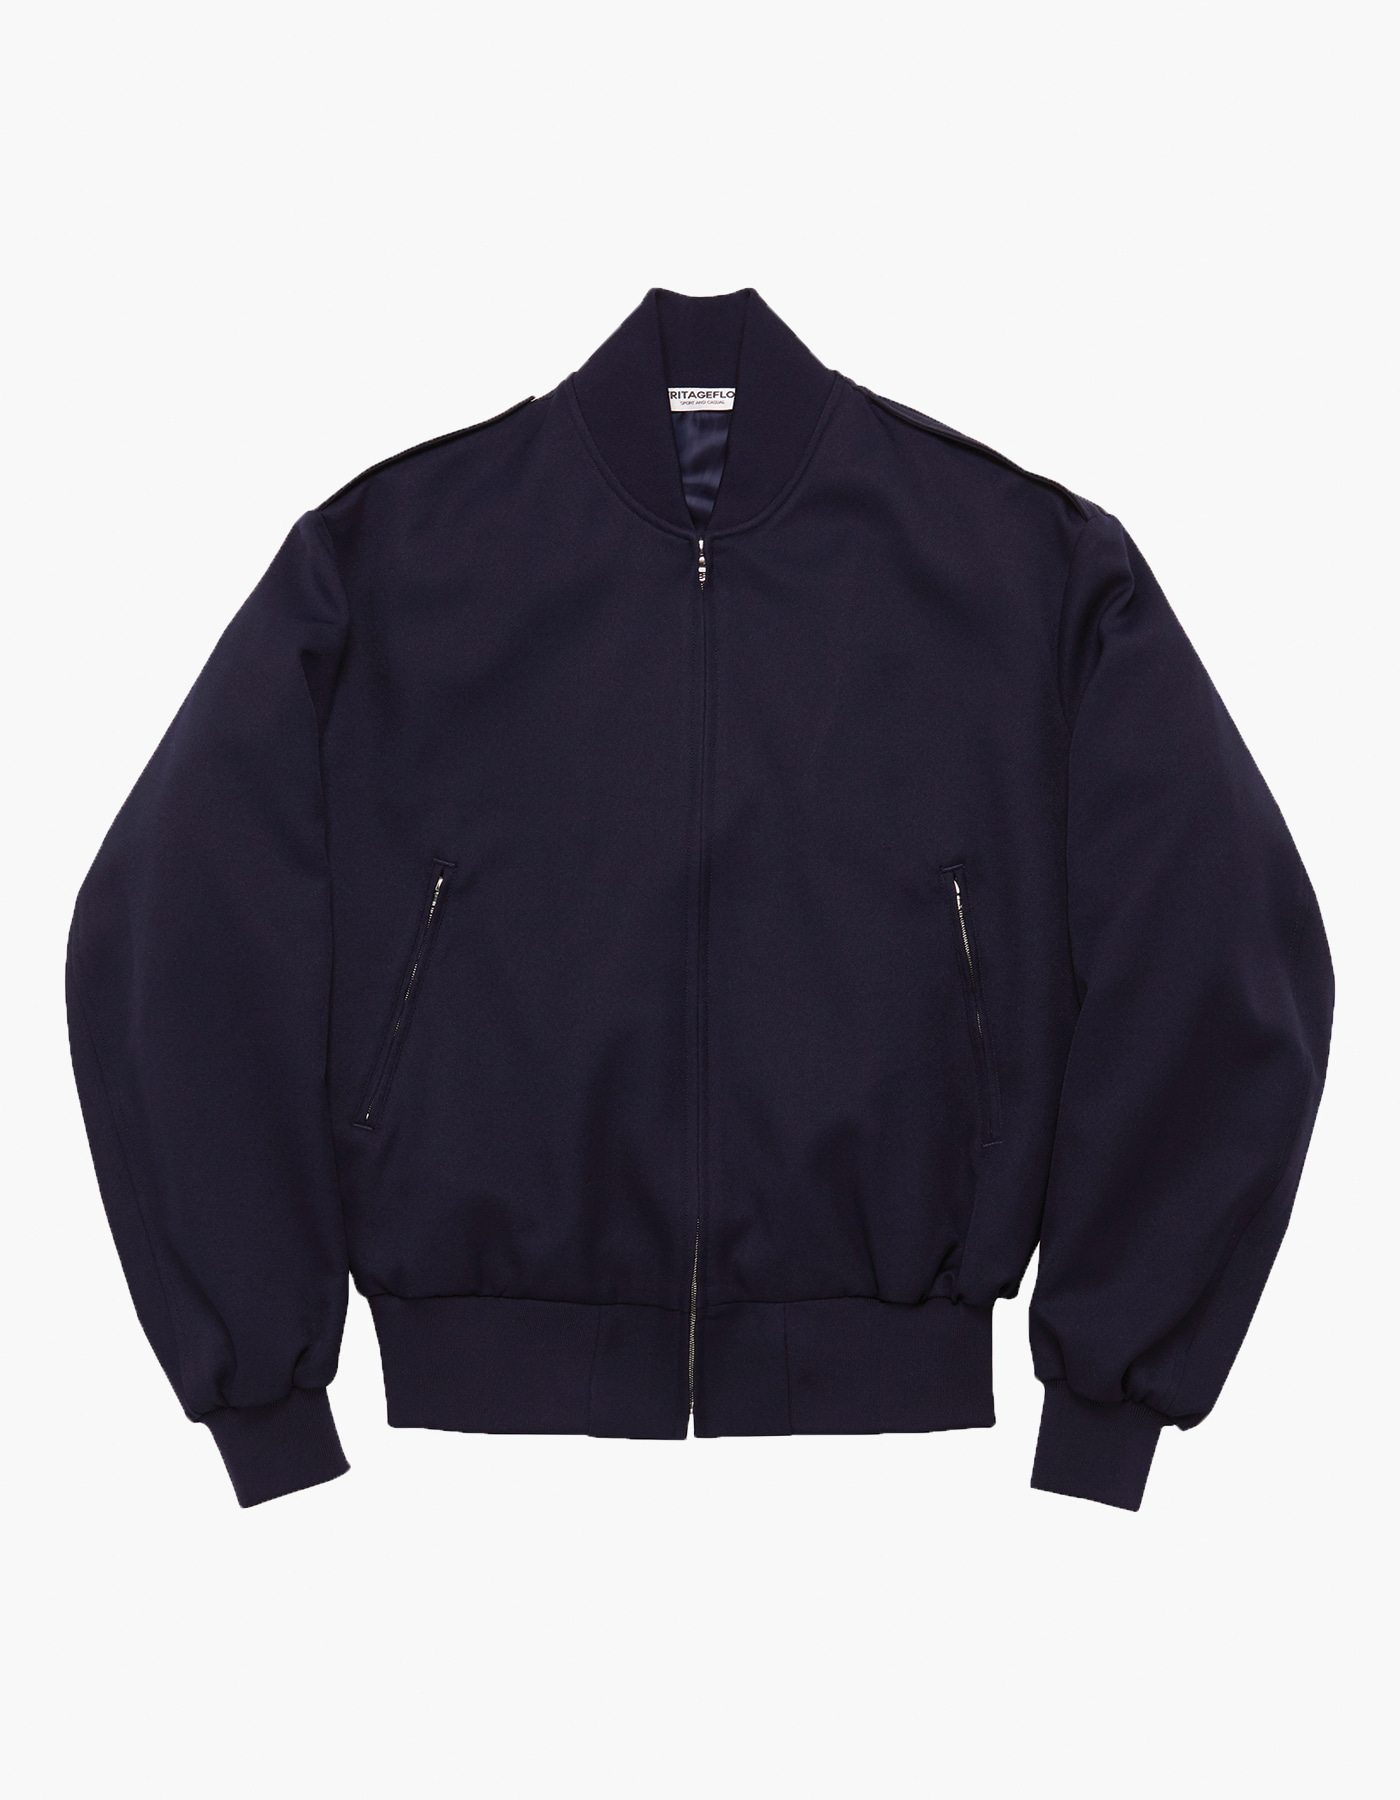 OFFICER BLOUSON / NAVY